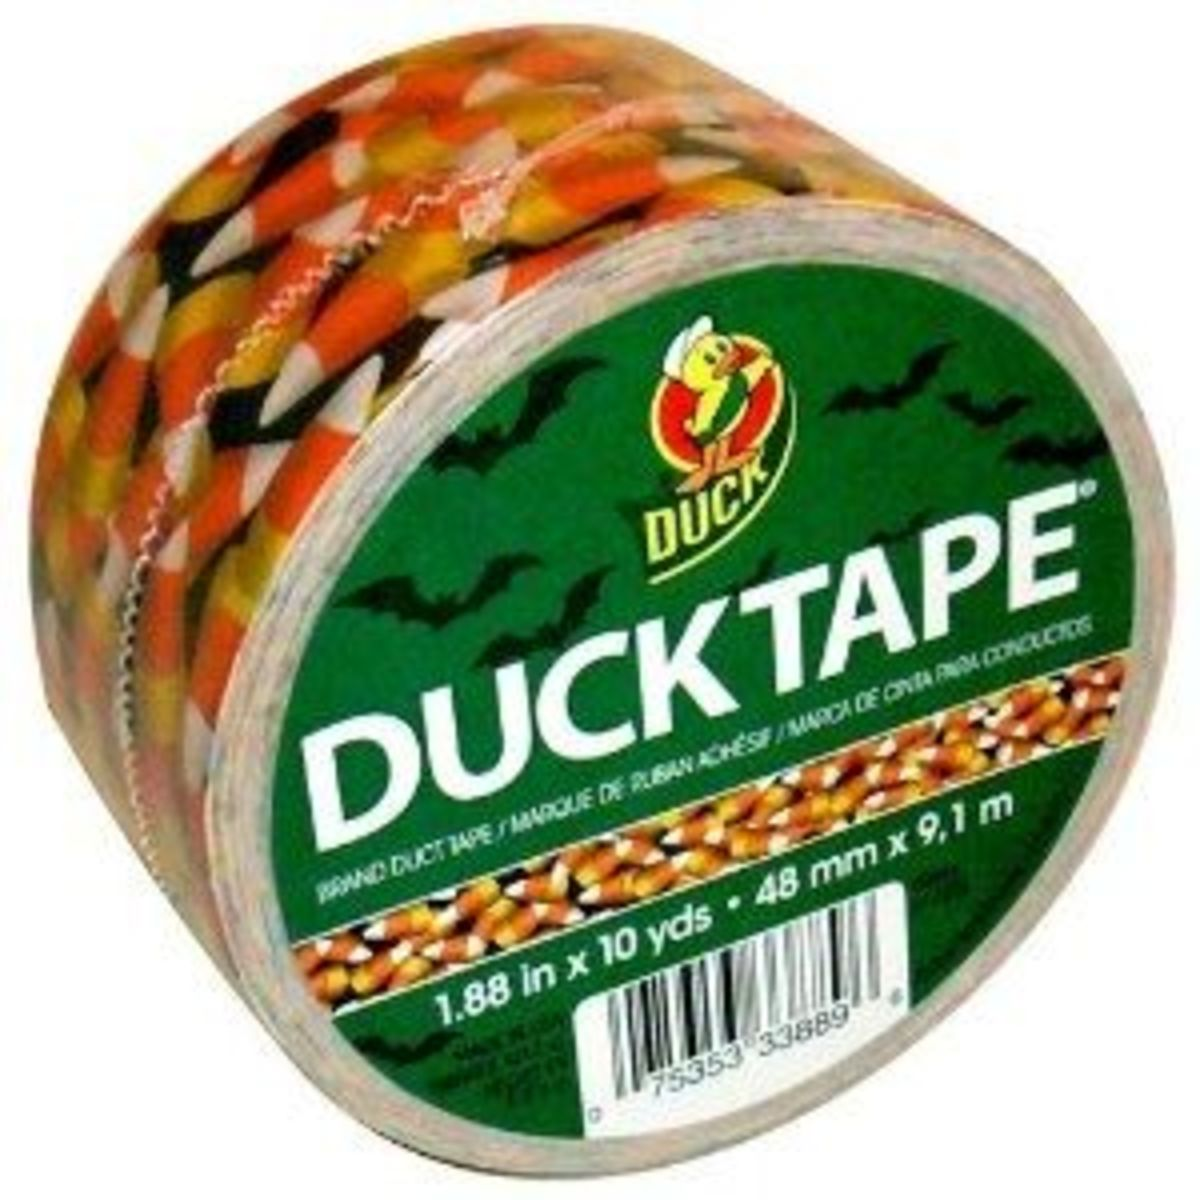 Candy Corn Ducktape